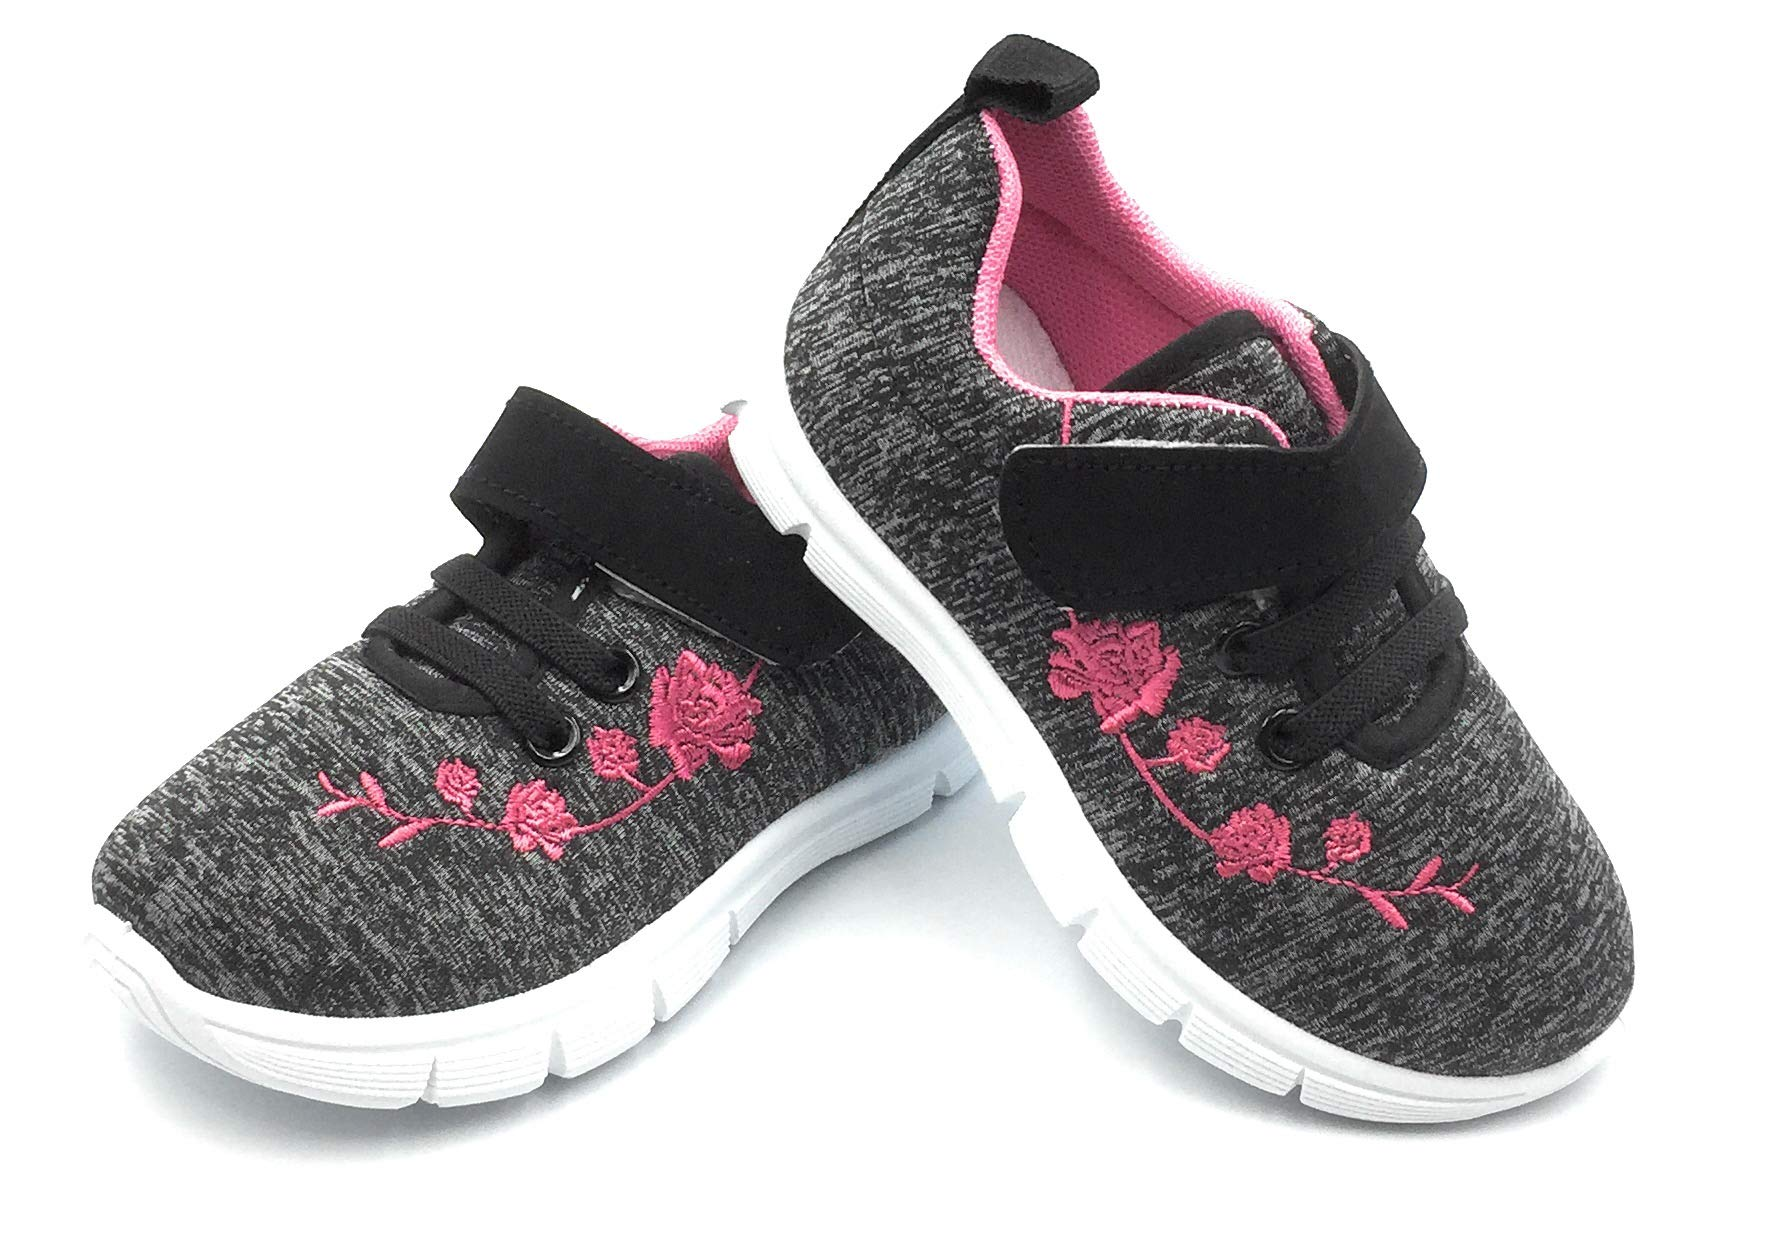 Bless Children Baby Toddlers Boy's Girl's Breathable Fashion Sneakers Walking Running Shoes,Black1207.Size 4